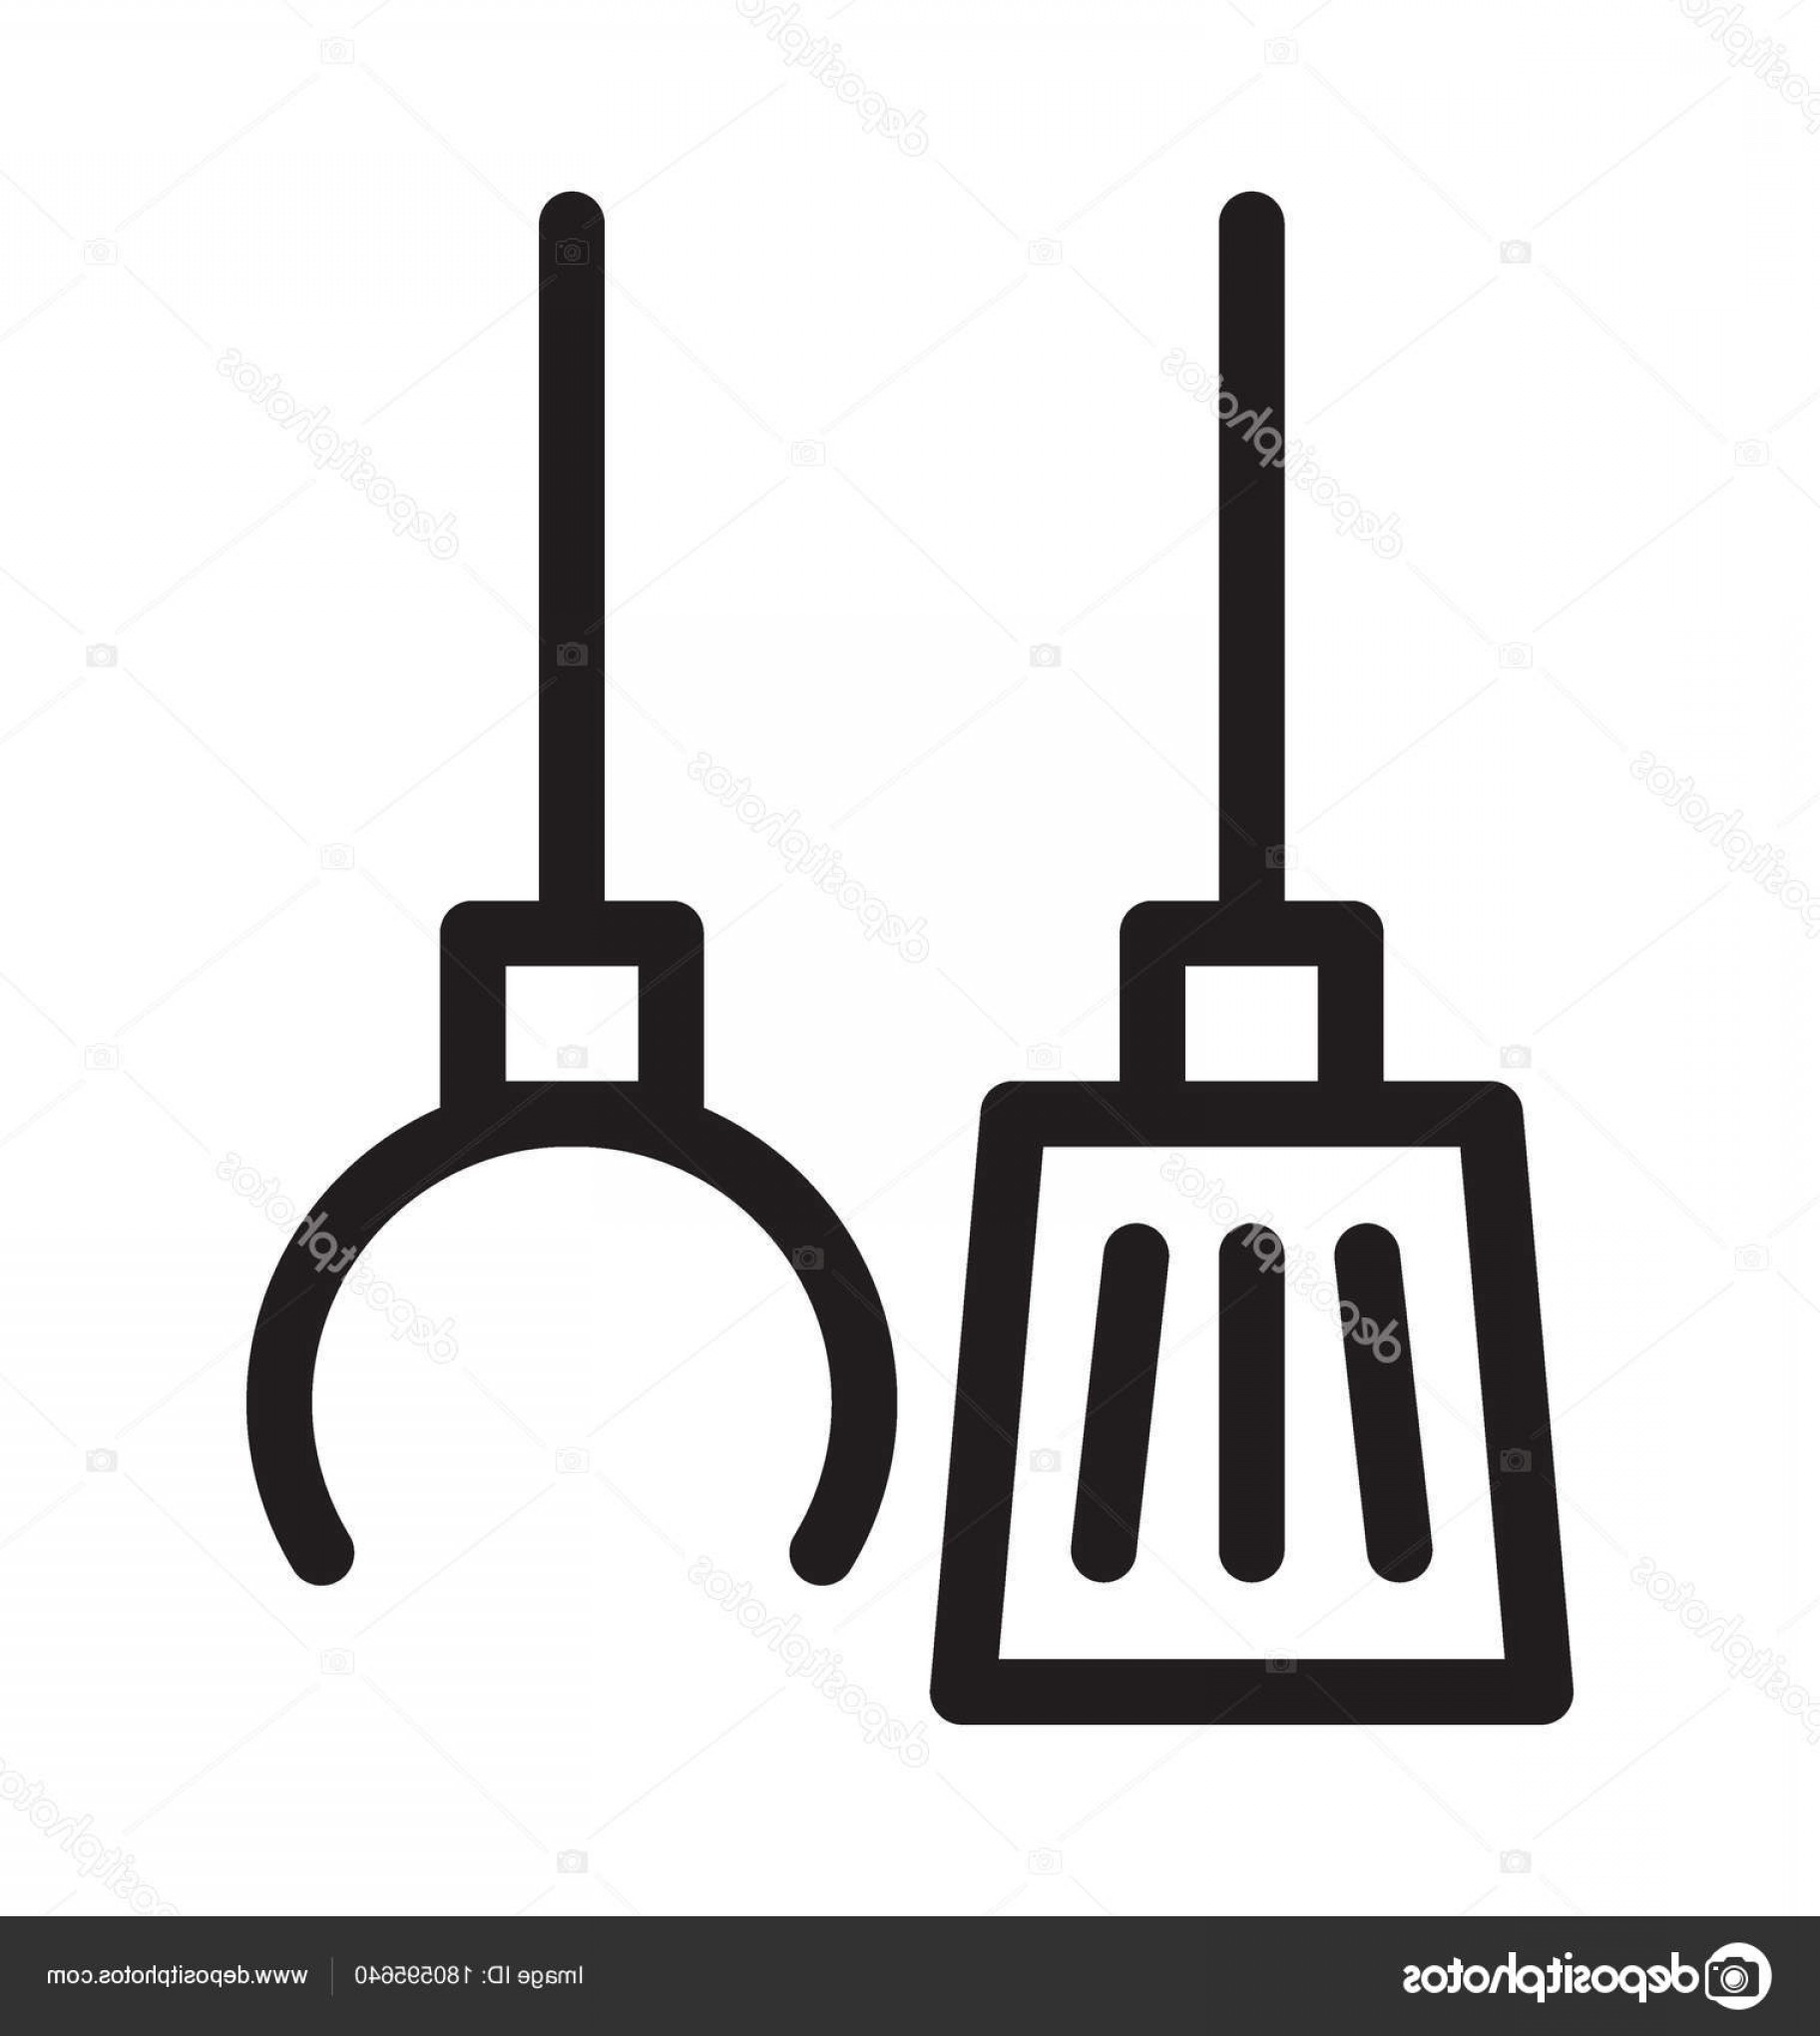 Janitorial Vector: Stock Illustration Janitorial Services Vector Outline Icon